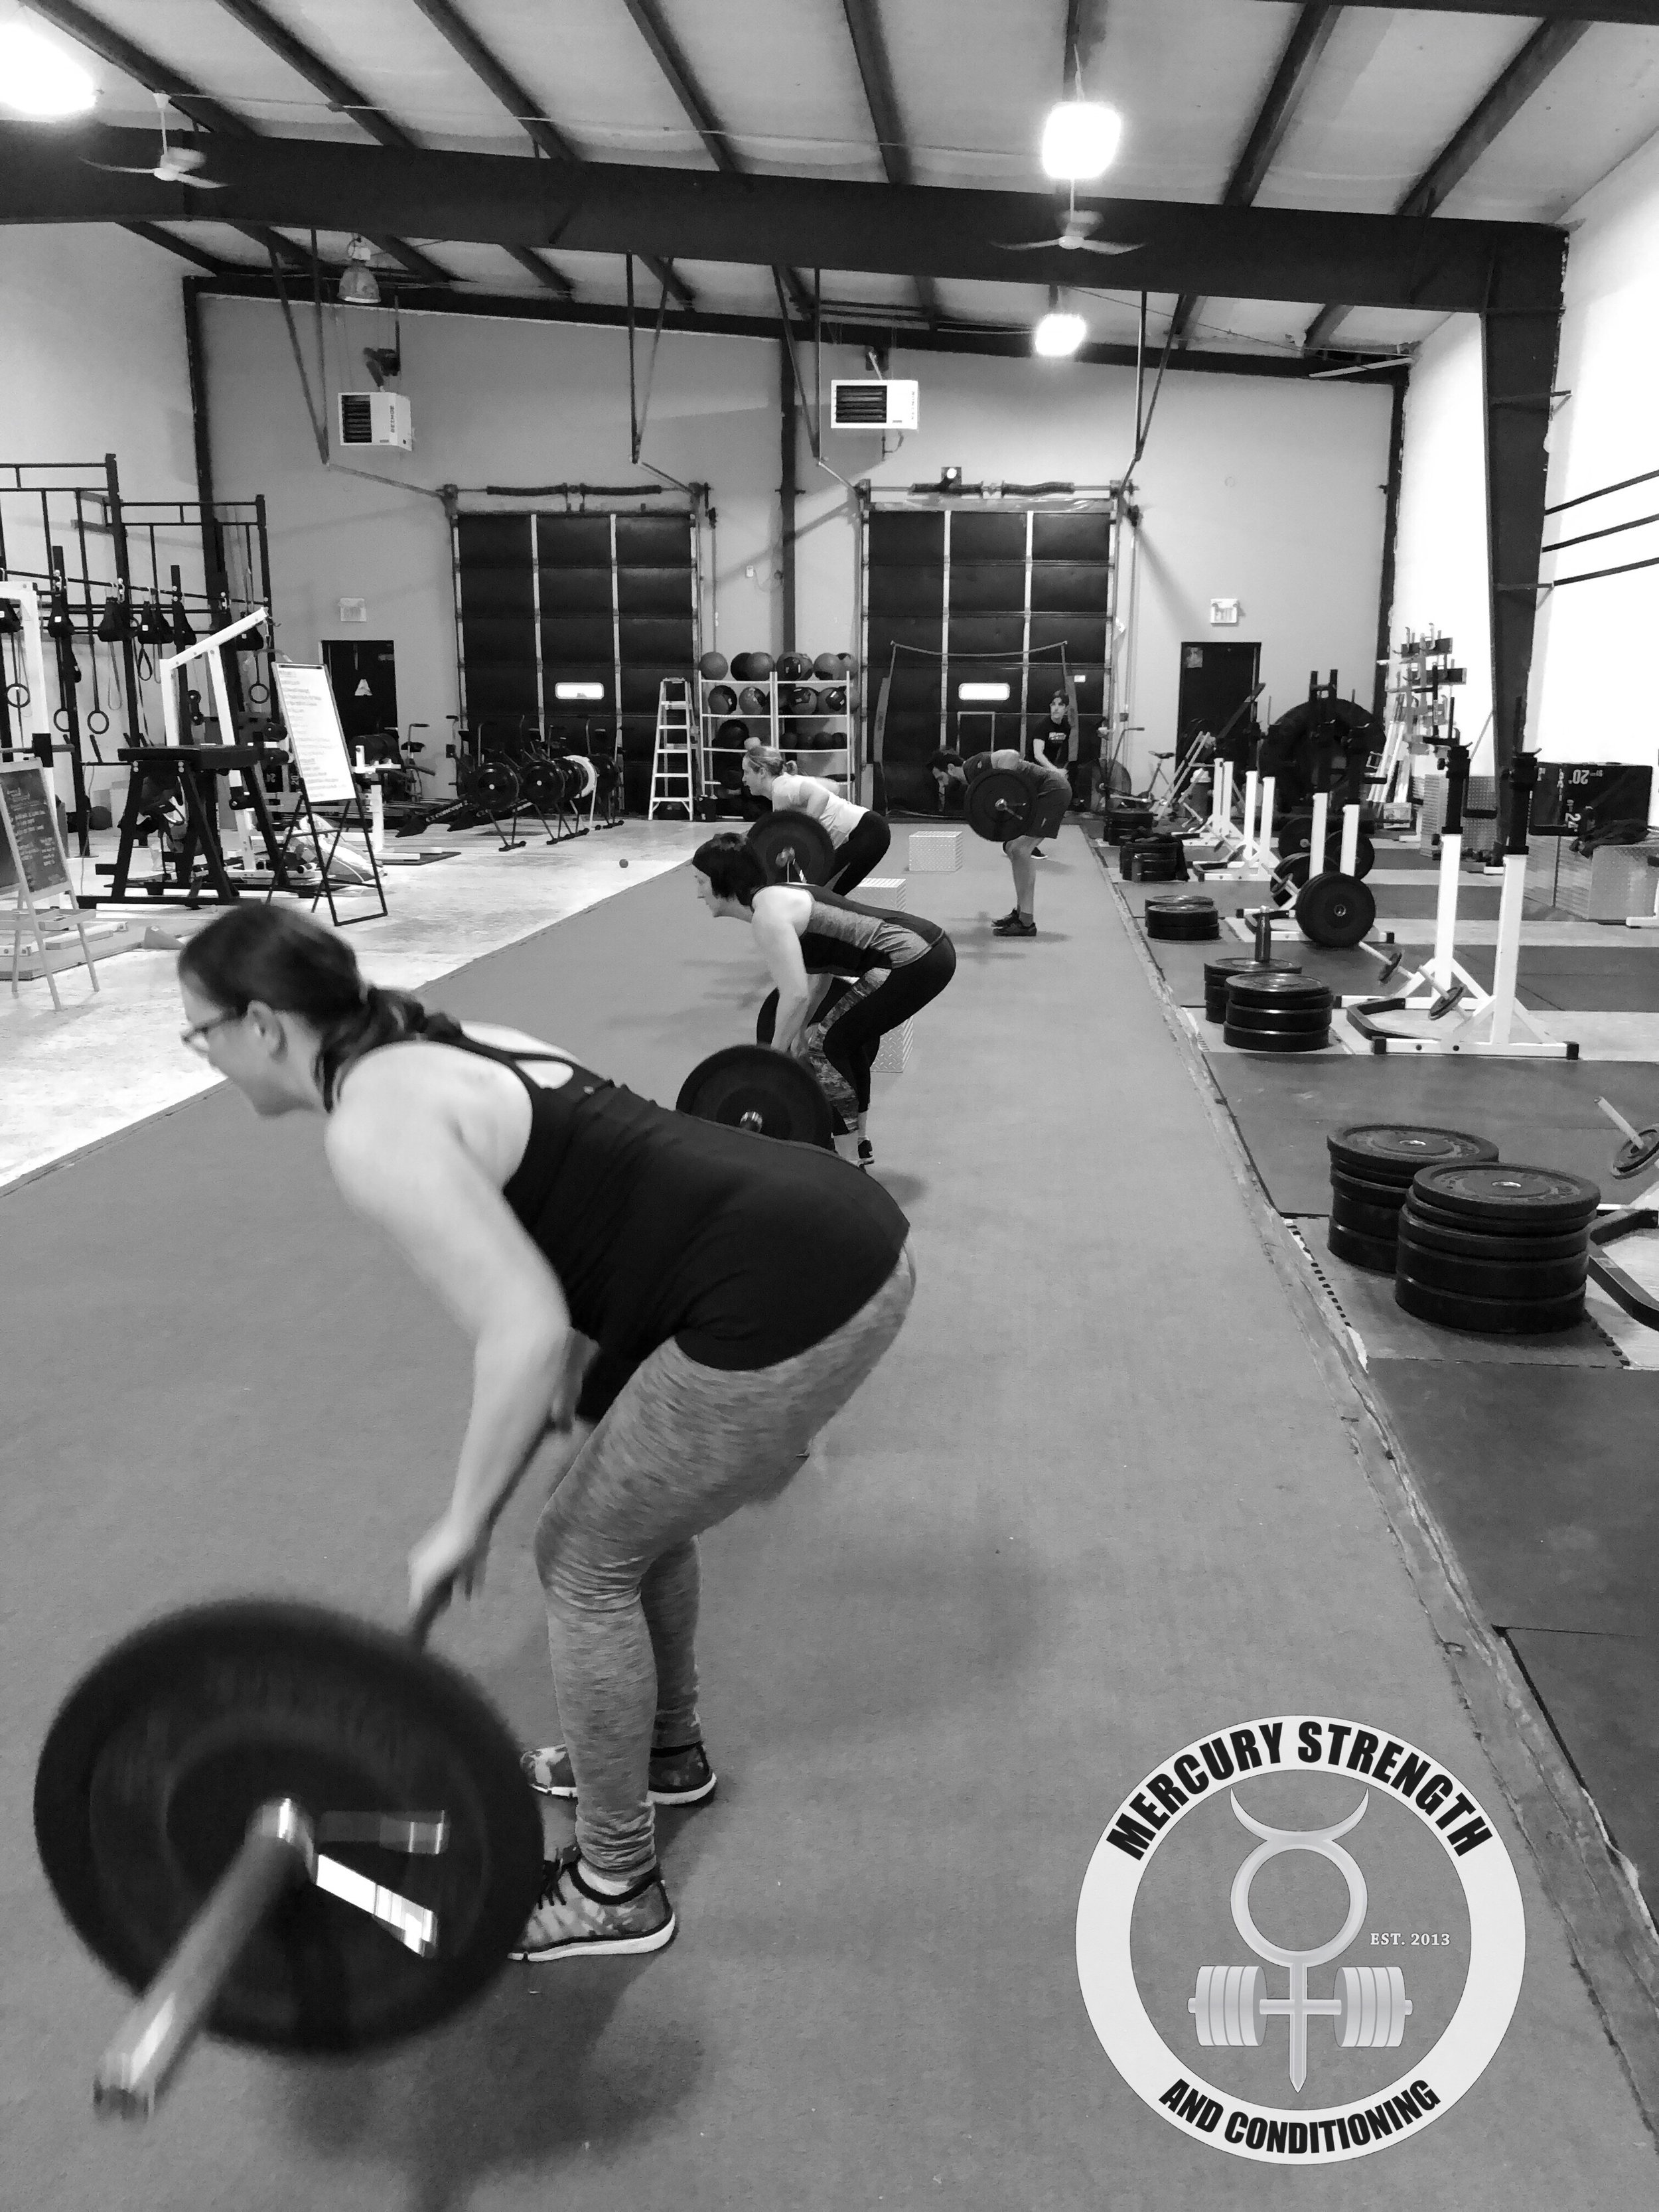 Some Pendlay rows to help strengthen the upper back